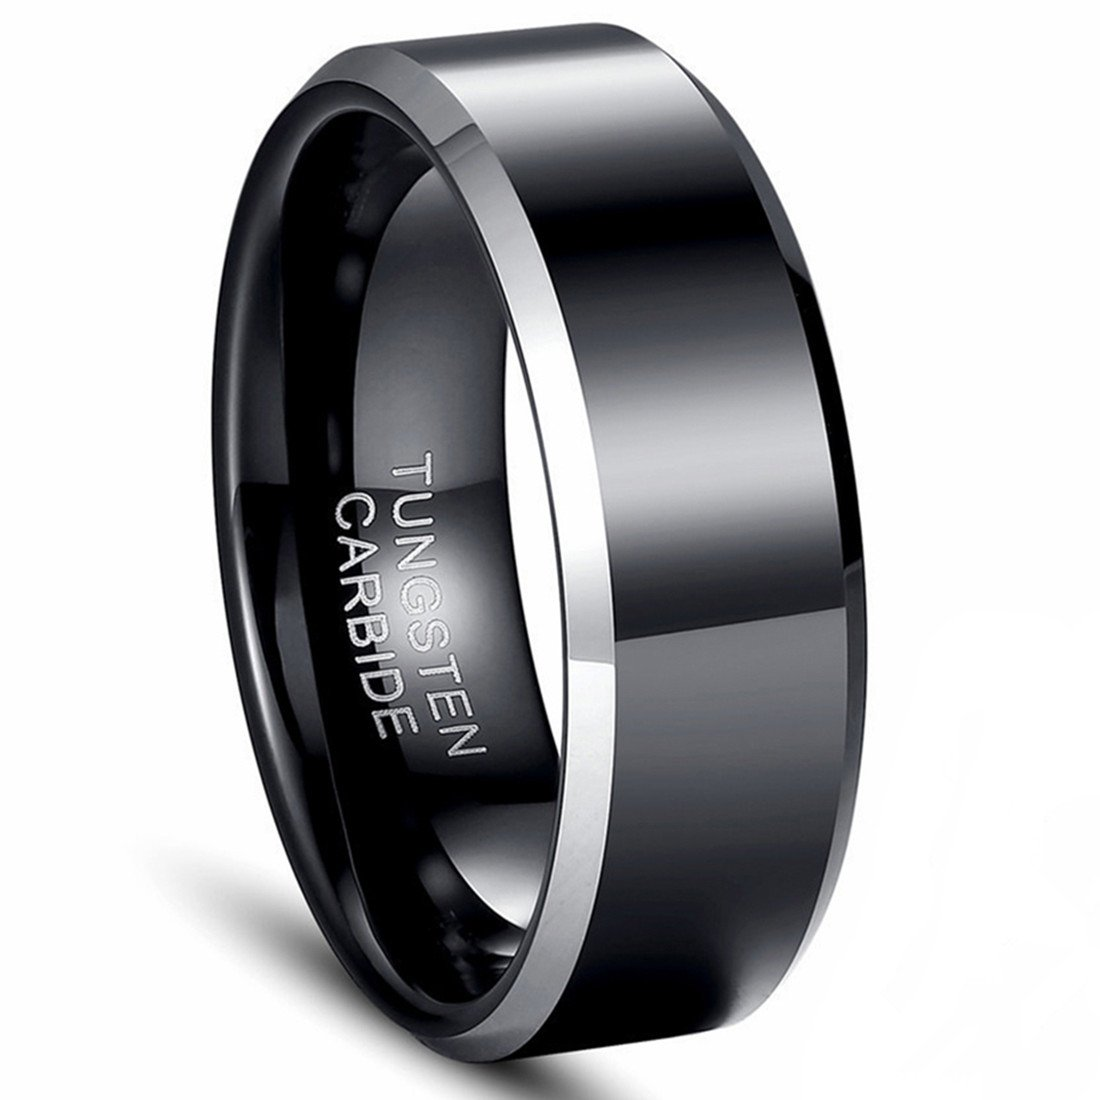 Tungsten Carbide Rings Men's 8mm Wedding Band Black and Silver Polished Wedding Engagement Ring -Kiss me (12)